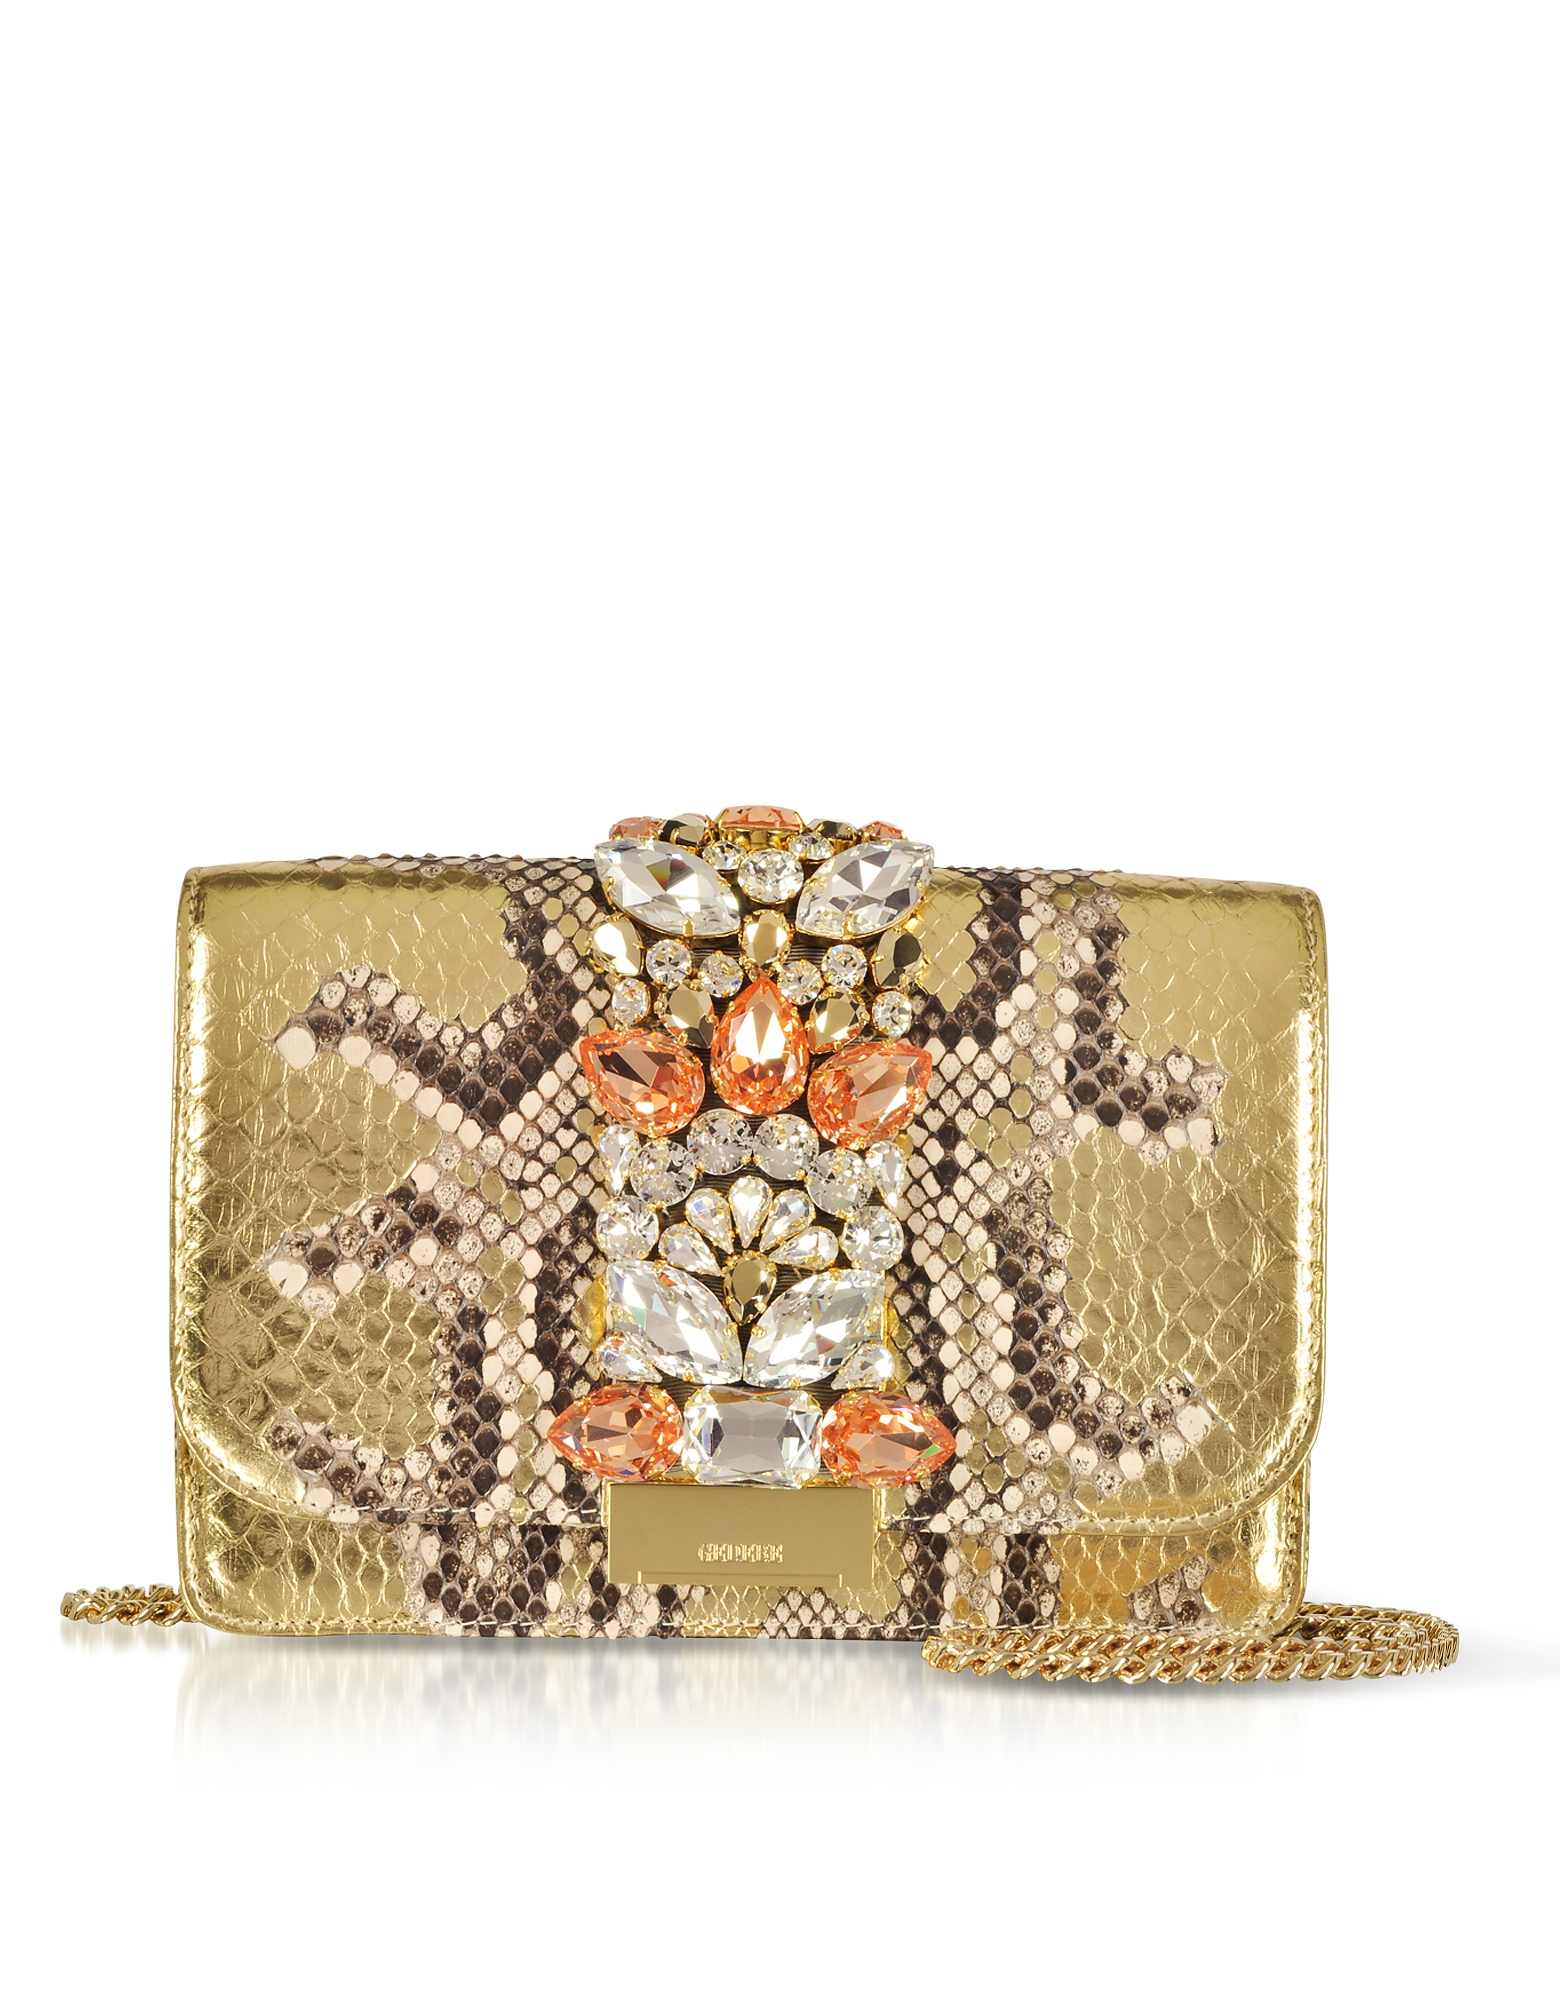 Cliky Roccia Gold Python Clutch w/Crystals and Chain Strap